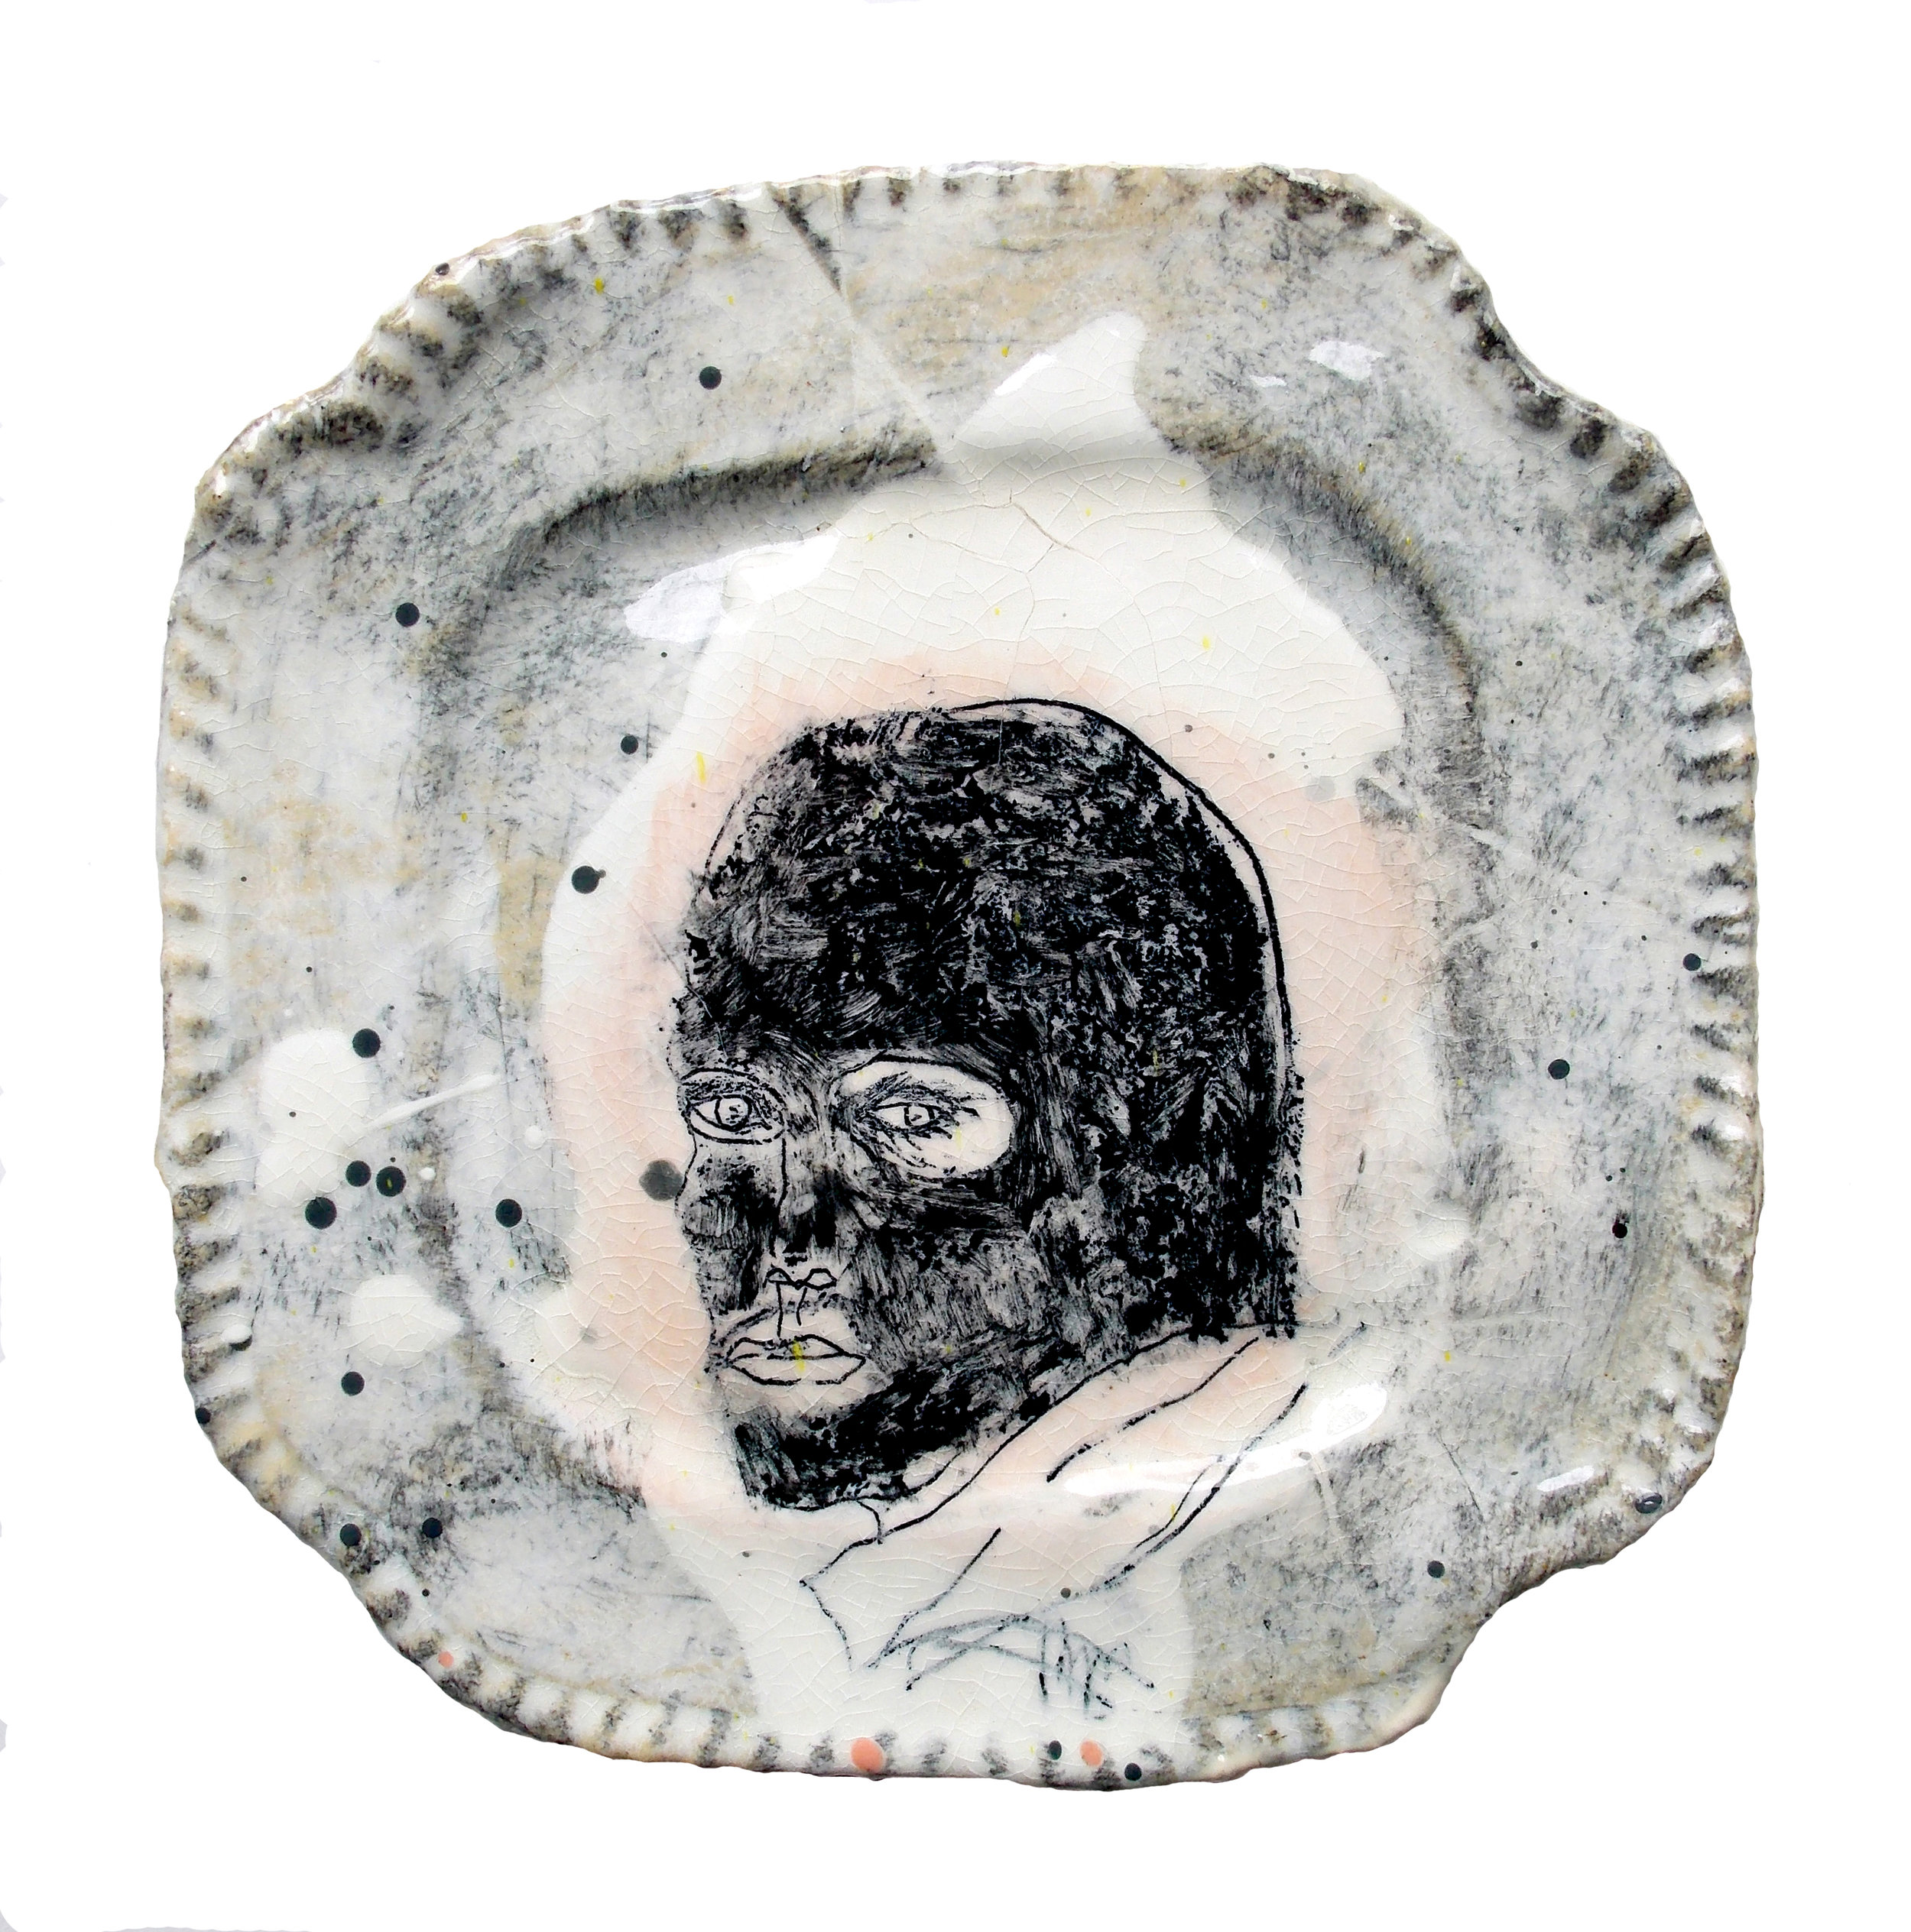 Balaclava man and the art scam - Ceramic plate with mono-printed drawing and clear glaze.My work is divided between the abstract and the figurative overlapping in a lively and expressive process of transformation.I am fascinated with materiality and the tension that operates between two and three dimensions.Balaclava man and the art scam represents the dark side of art scammers who contact artists pretending to be interested in buying their work under various different guises.